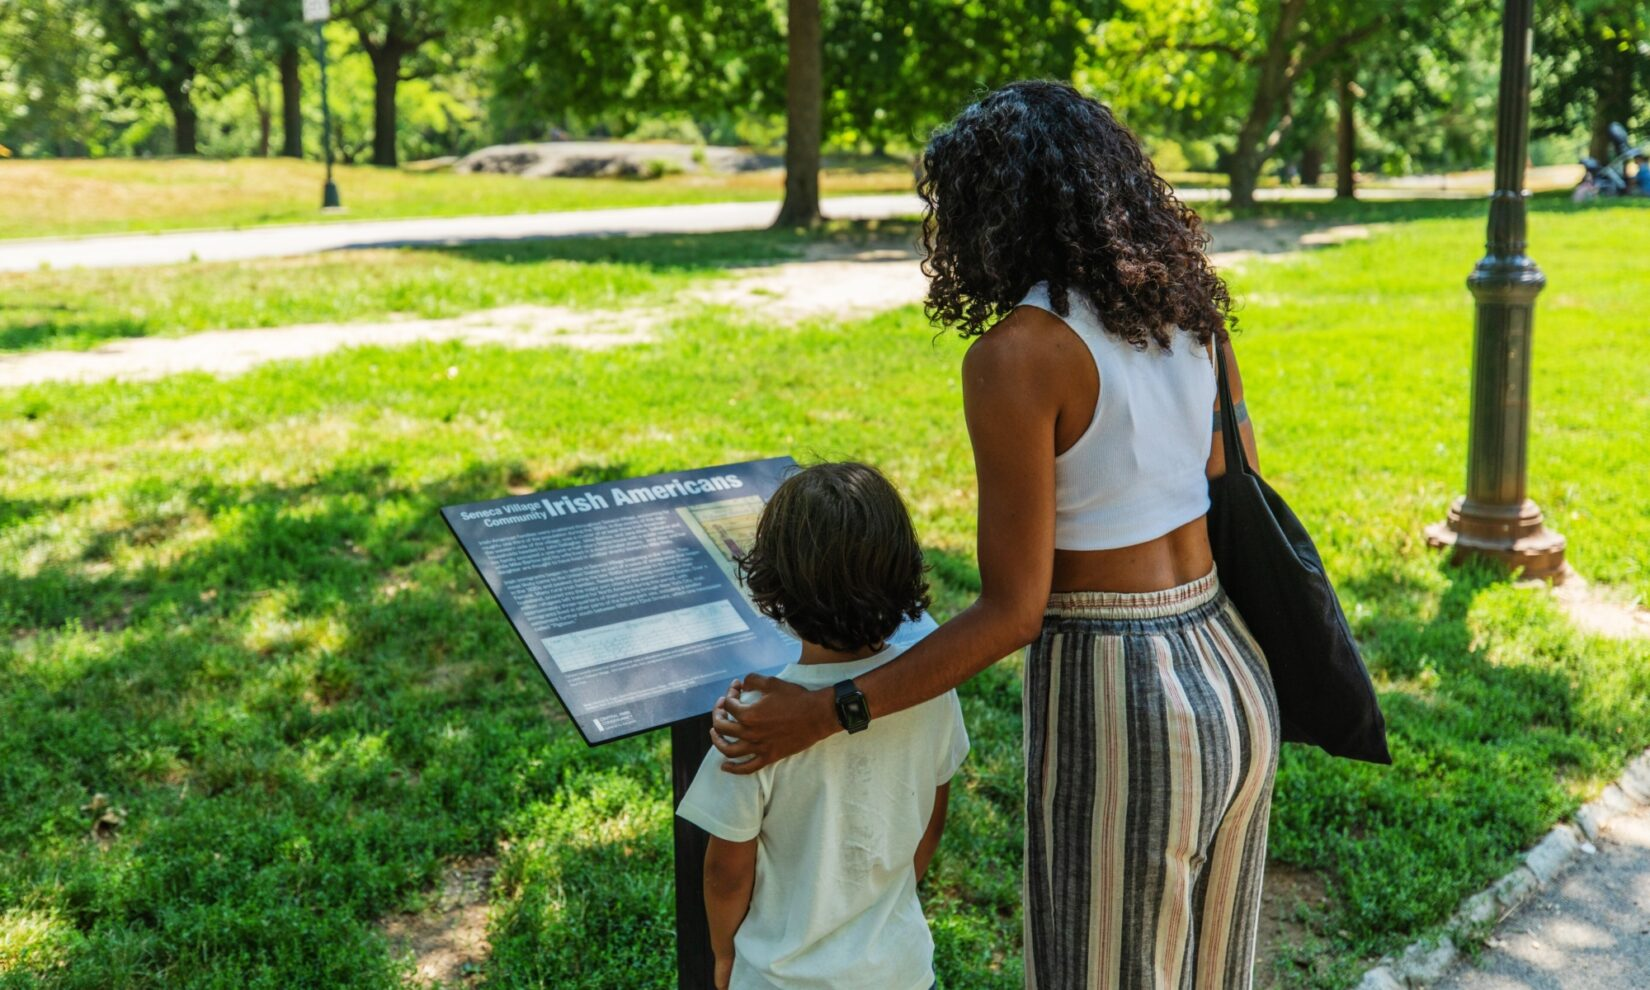 A woman and a child reading one of the in-Park signs describing Seneca Village